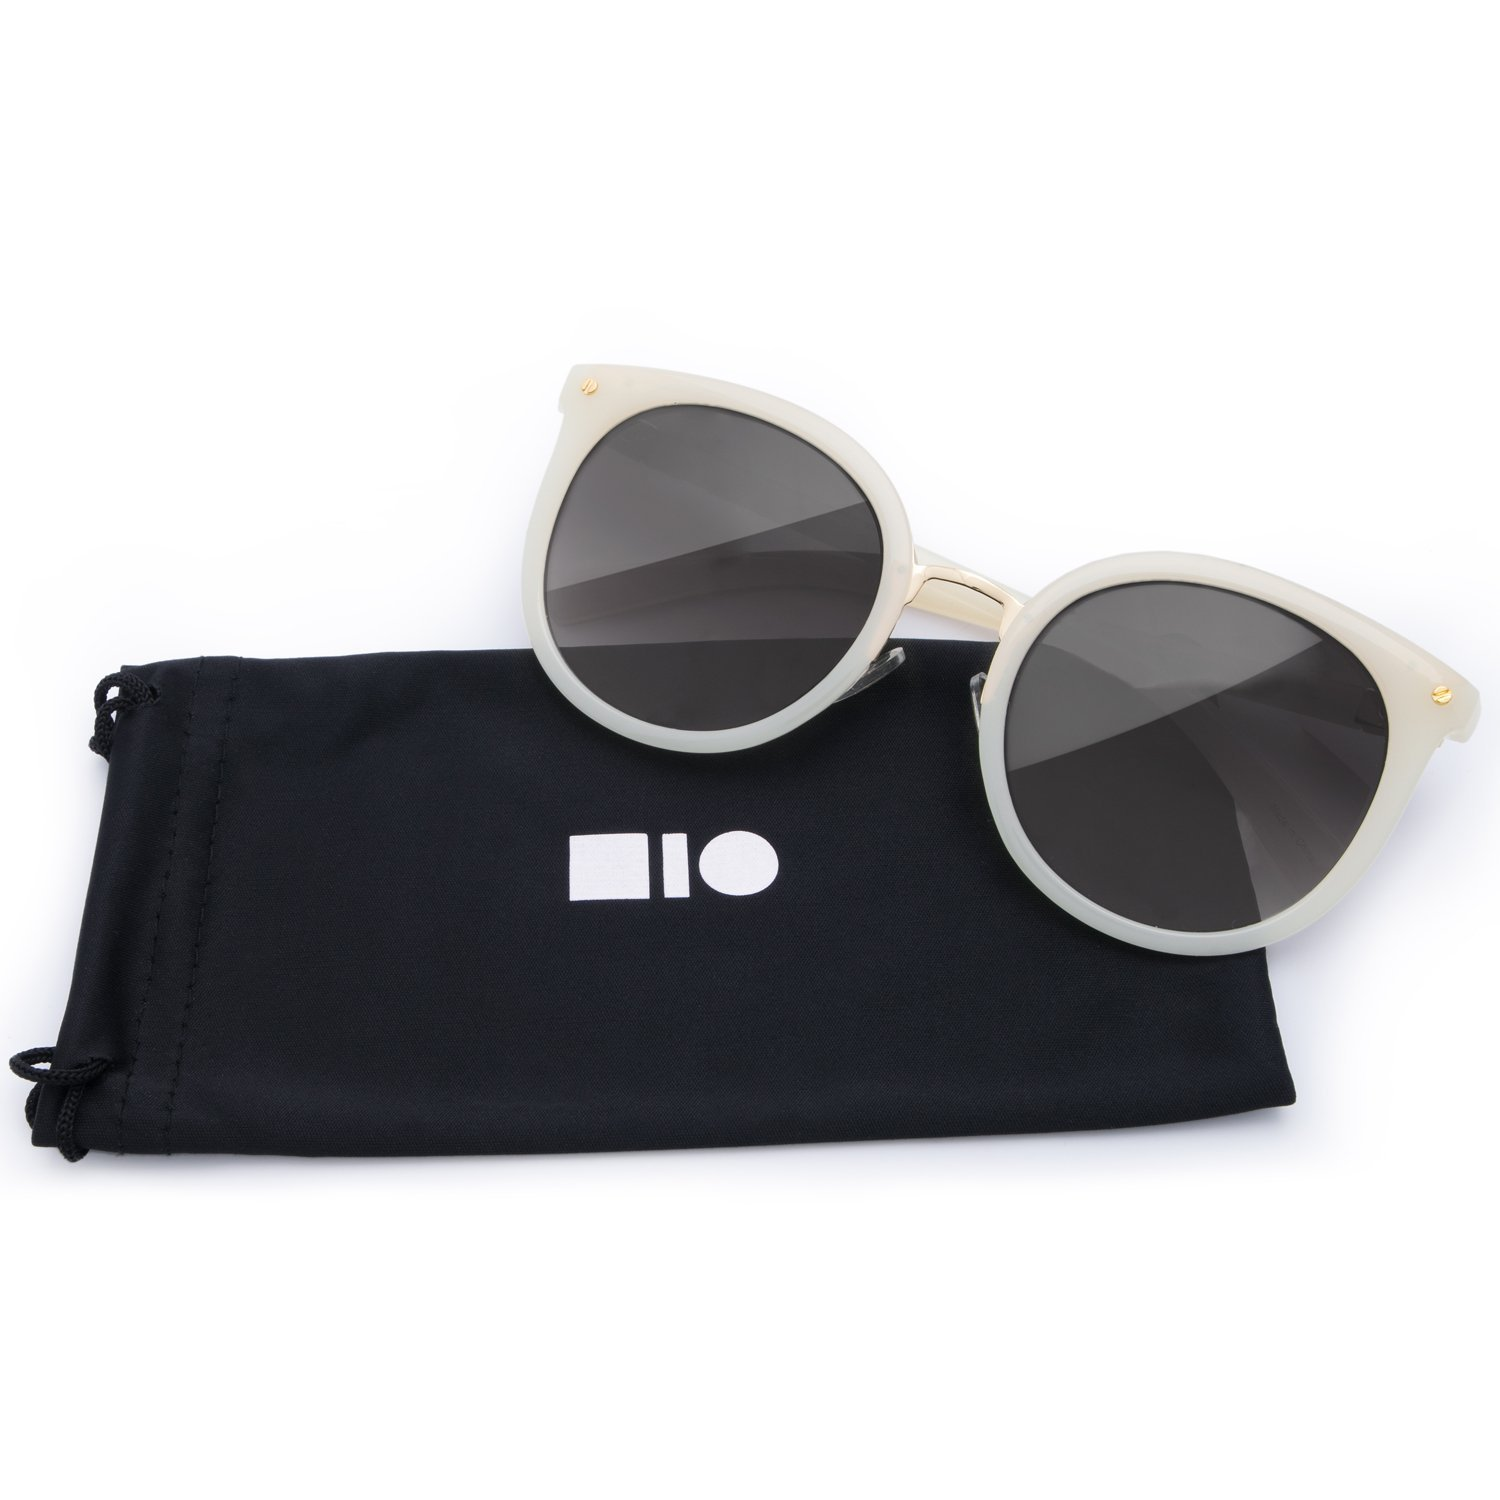 5e27b76d4d7f7 Amazon.com  Mio Eyewear  Cateye - Black  Fashion Sunglasses for Woman (100% UV  Protection) - White Gold  Clothing